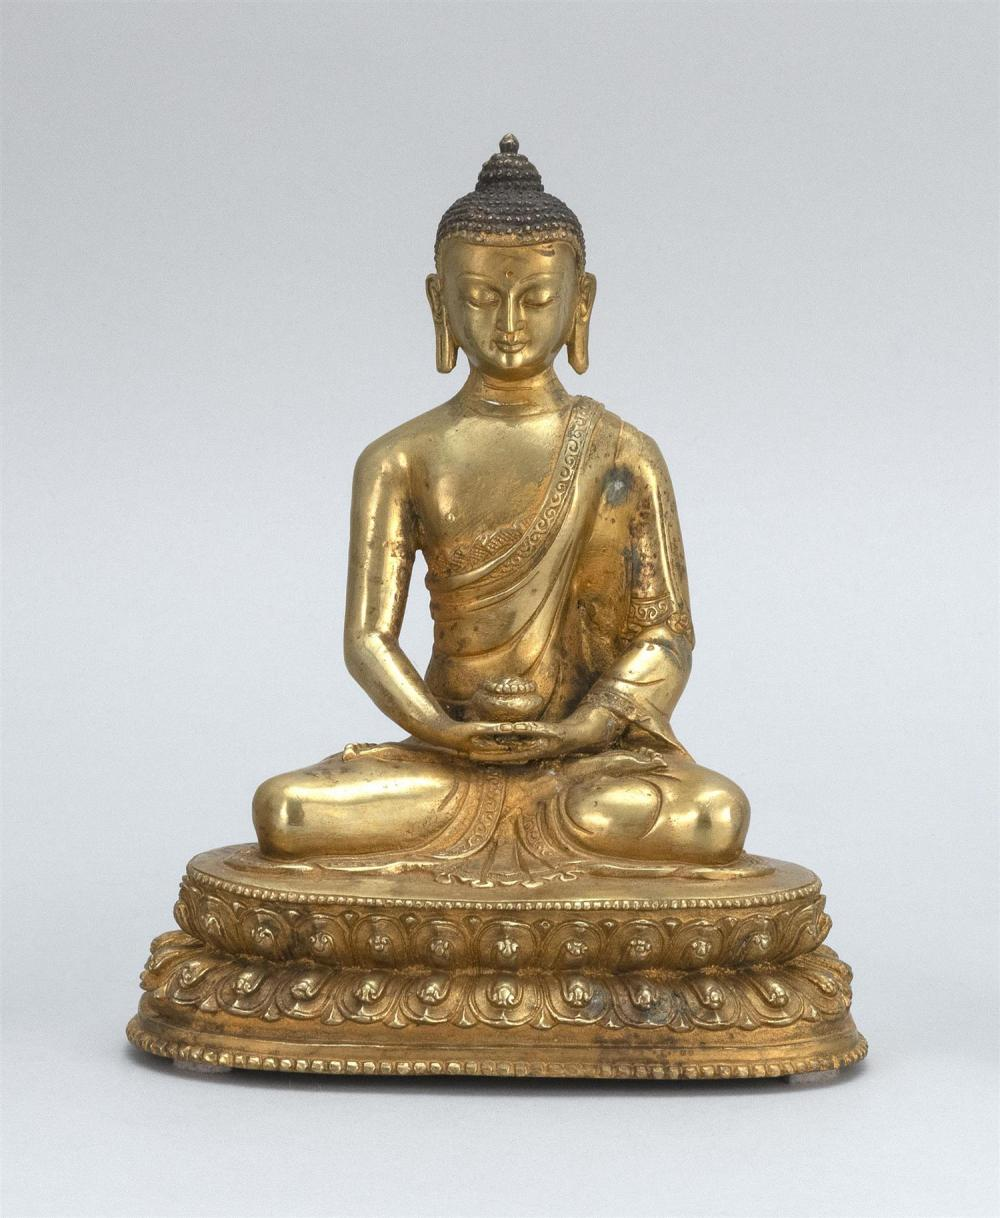 "SINO-TIBETAN GILT-BRONZE FIGURE OF BUDDHA Seated in lotus posture on a two-tier lotus base and holding a censer. Height 7.8""."